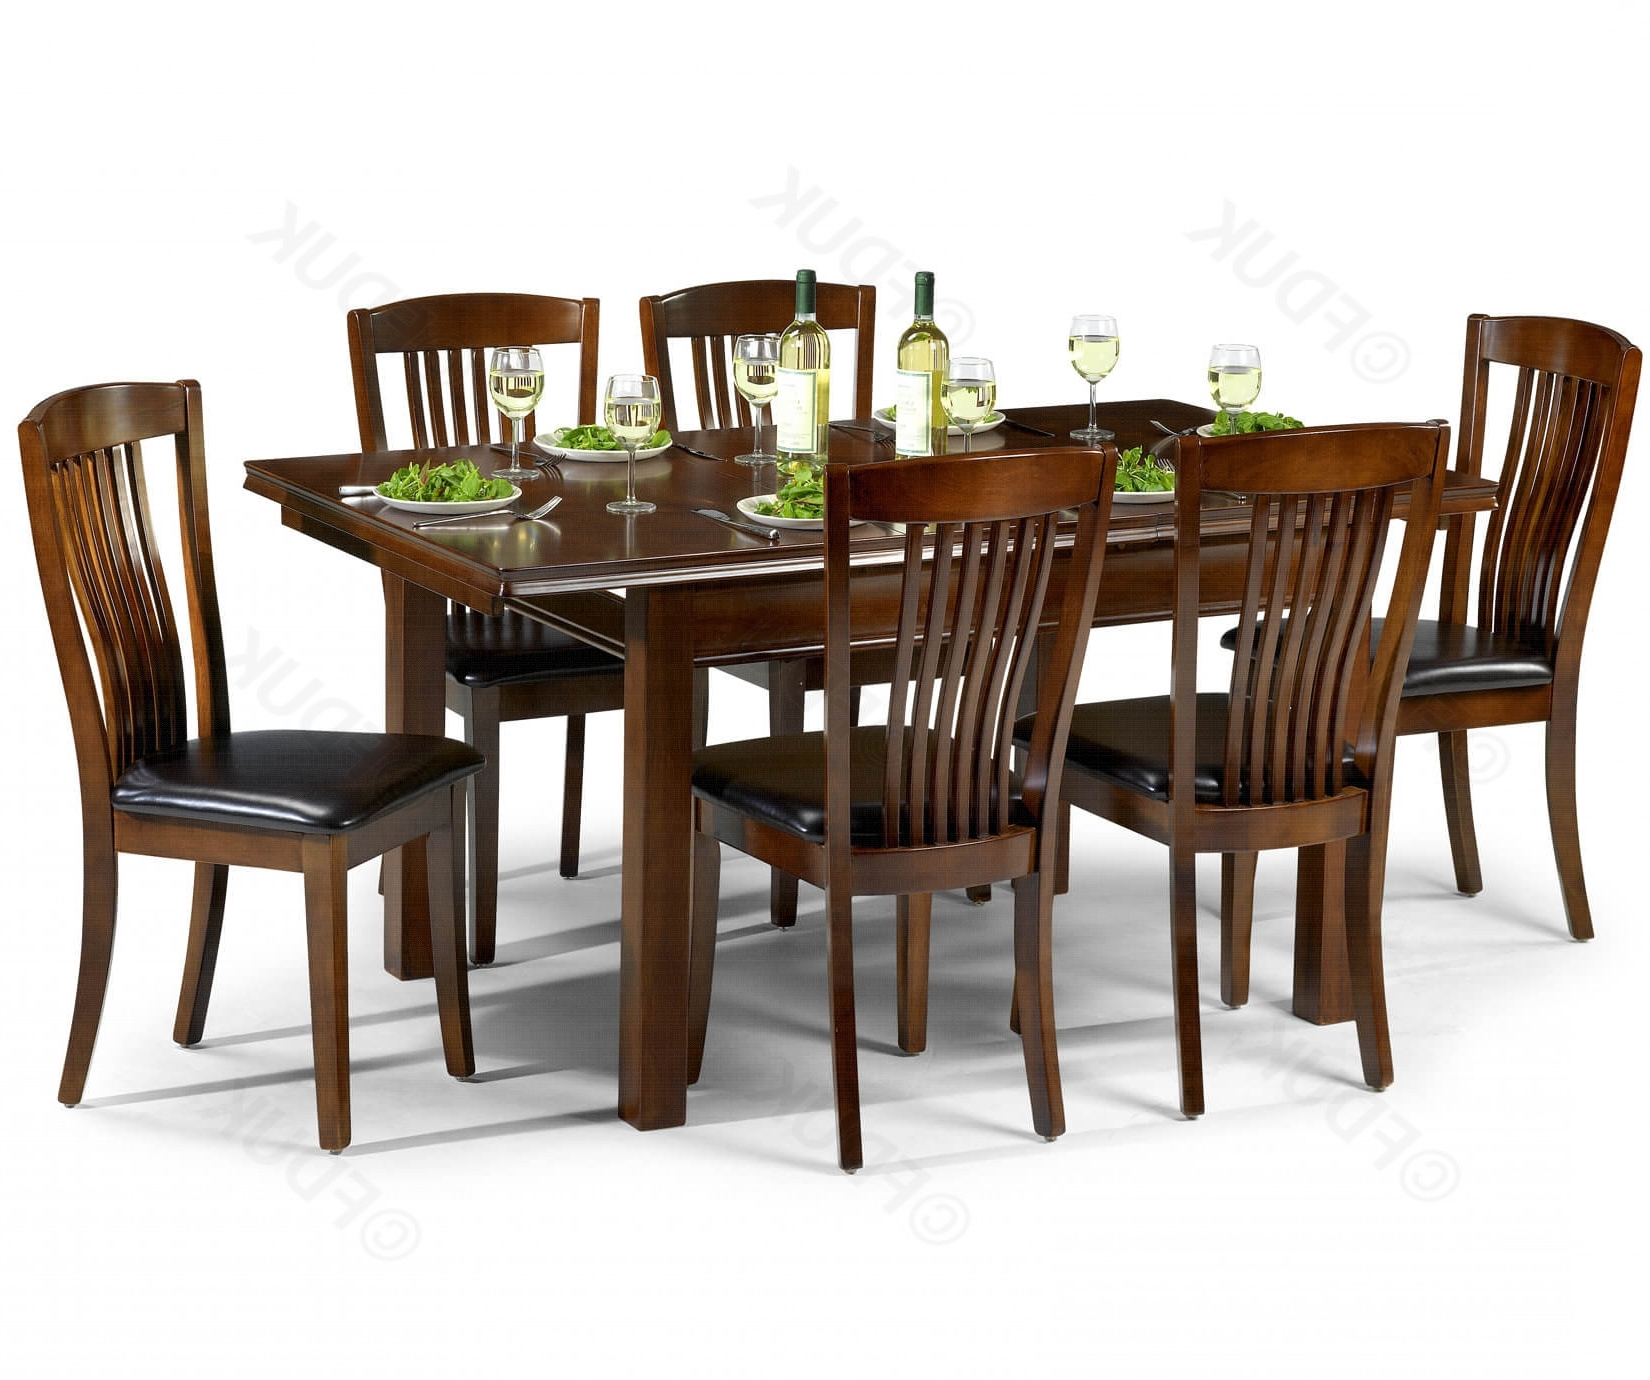 Canterbury Wooden Dining Table With 6 Within Famous Extending Dining Tables And 6 Chairs (Gallery 19 of 25)